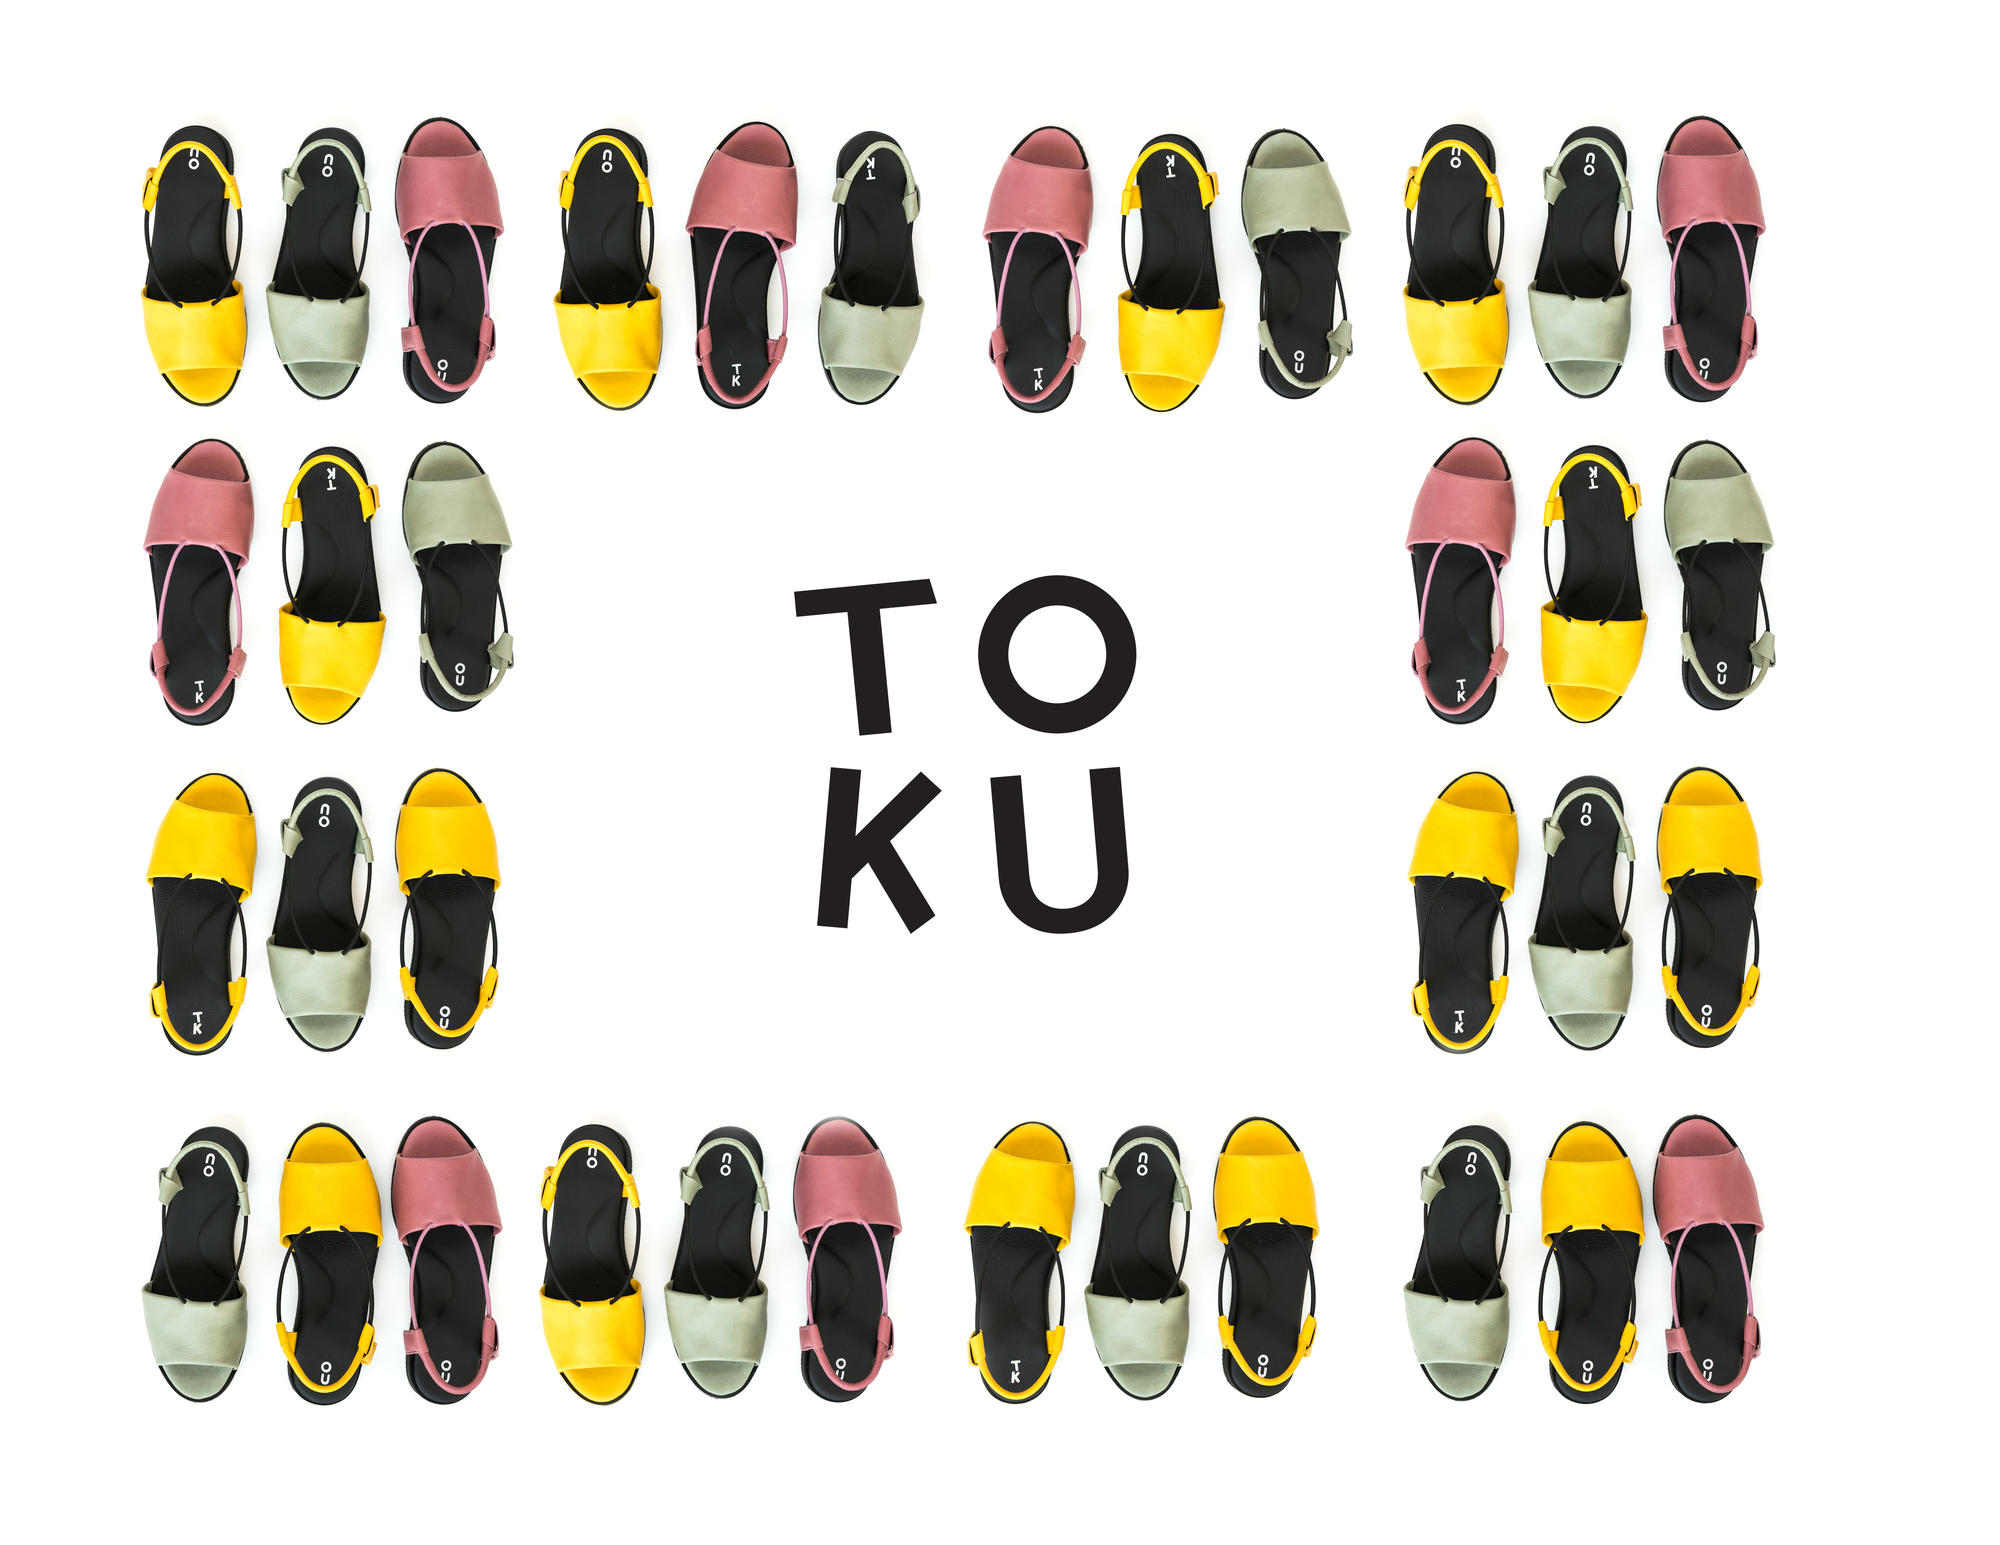 TOKU Berlin slow fashion shoes